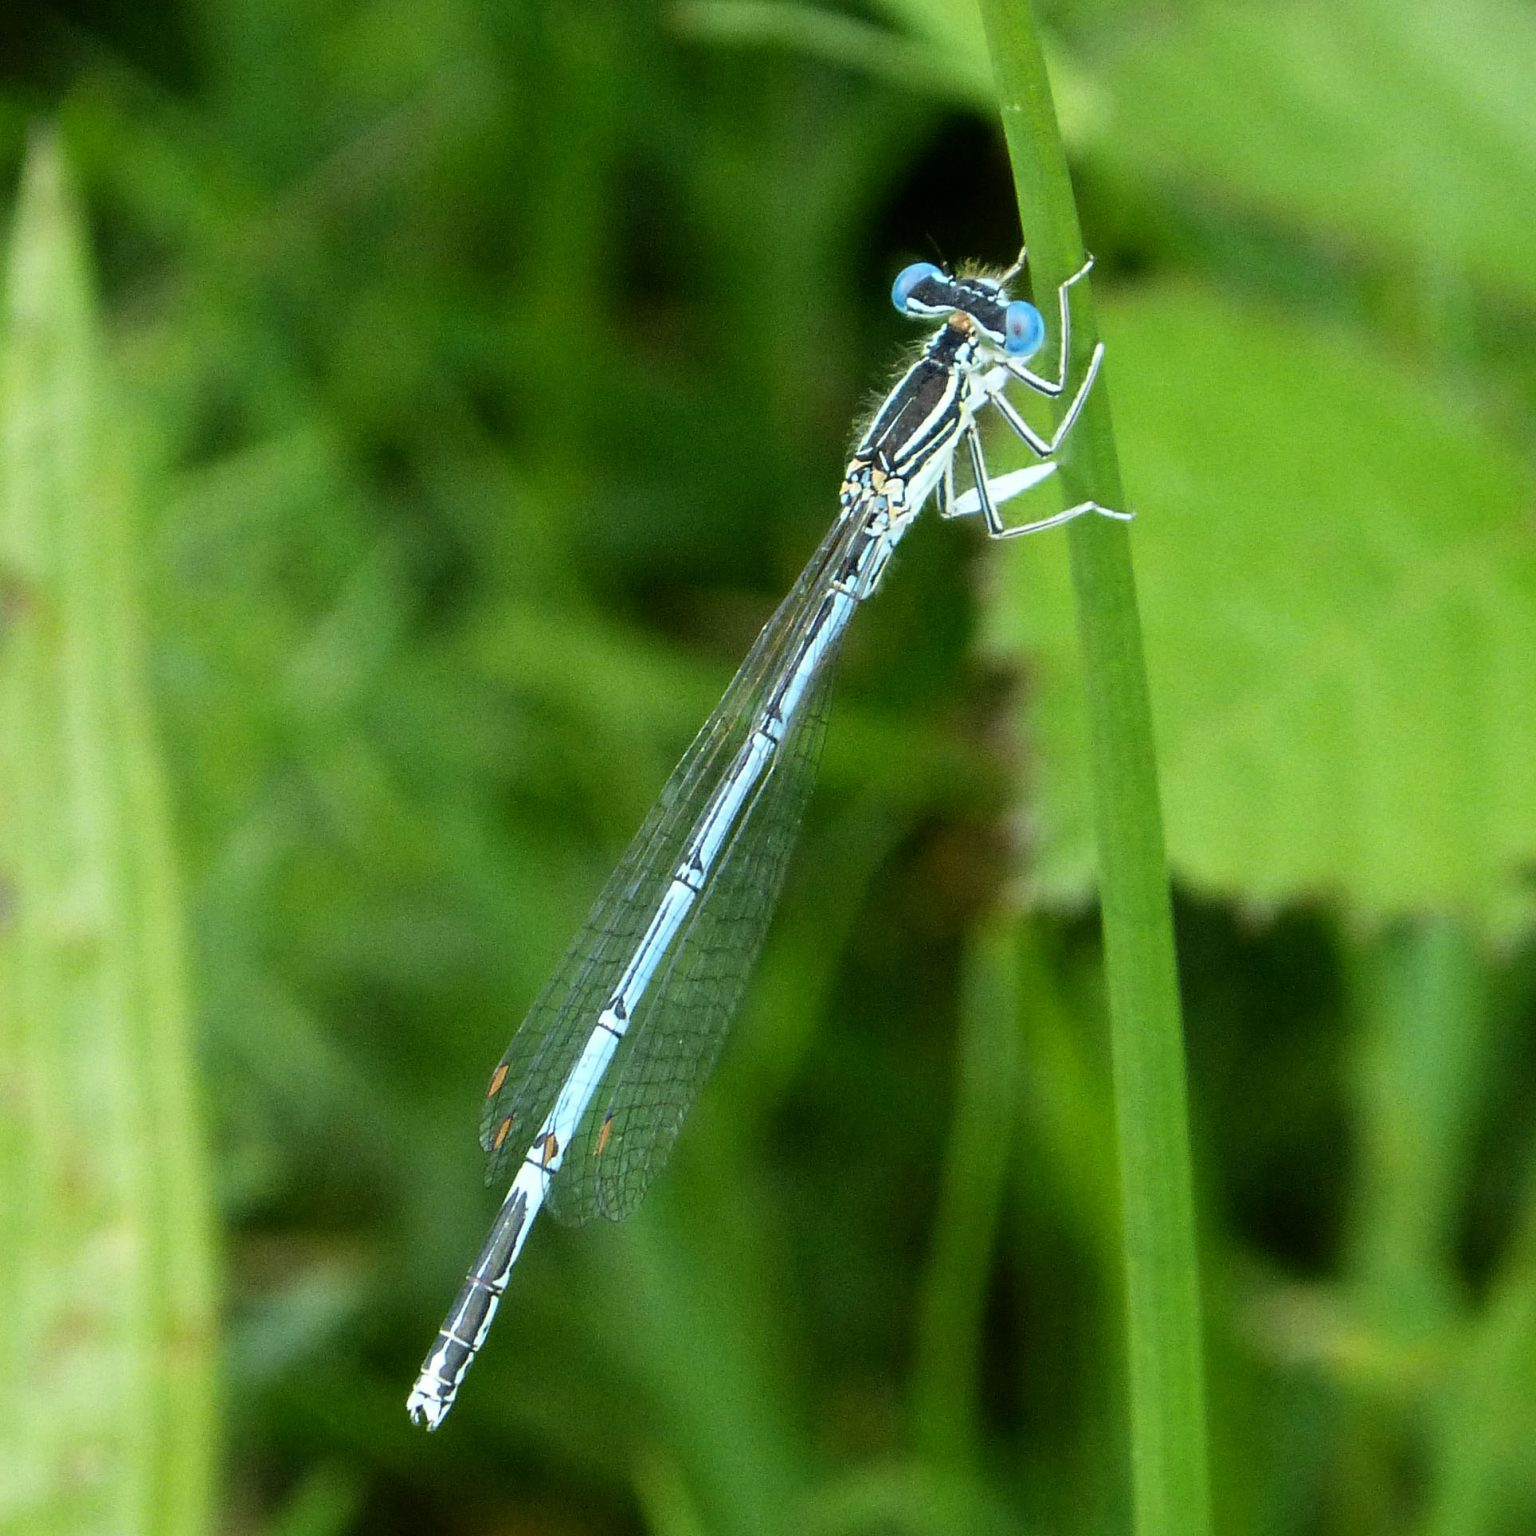 Blue Featherleg, White-legged Damselfly